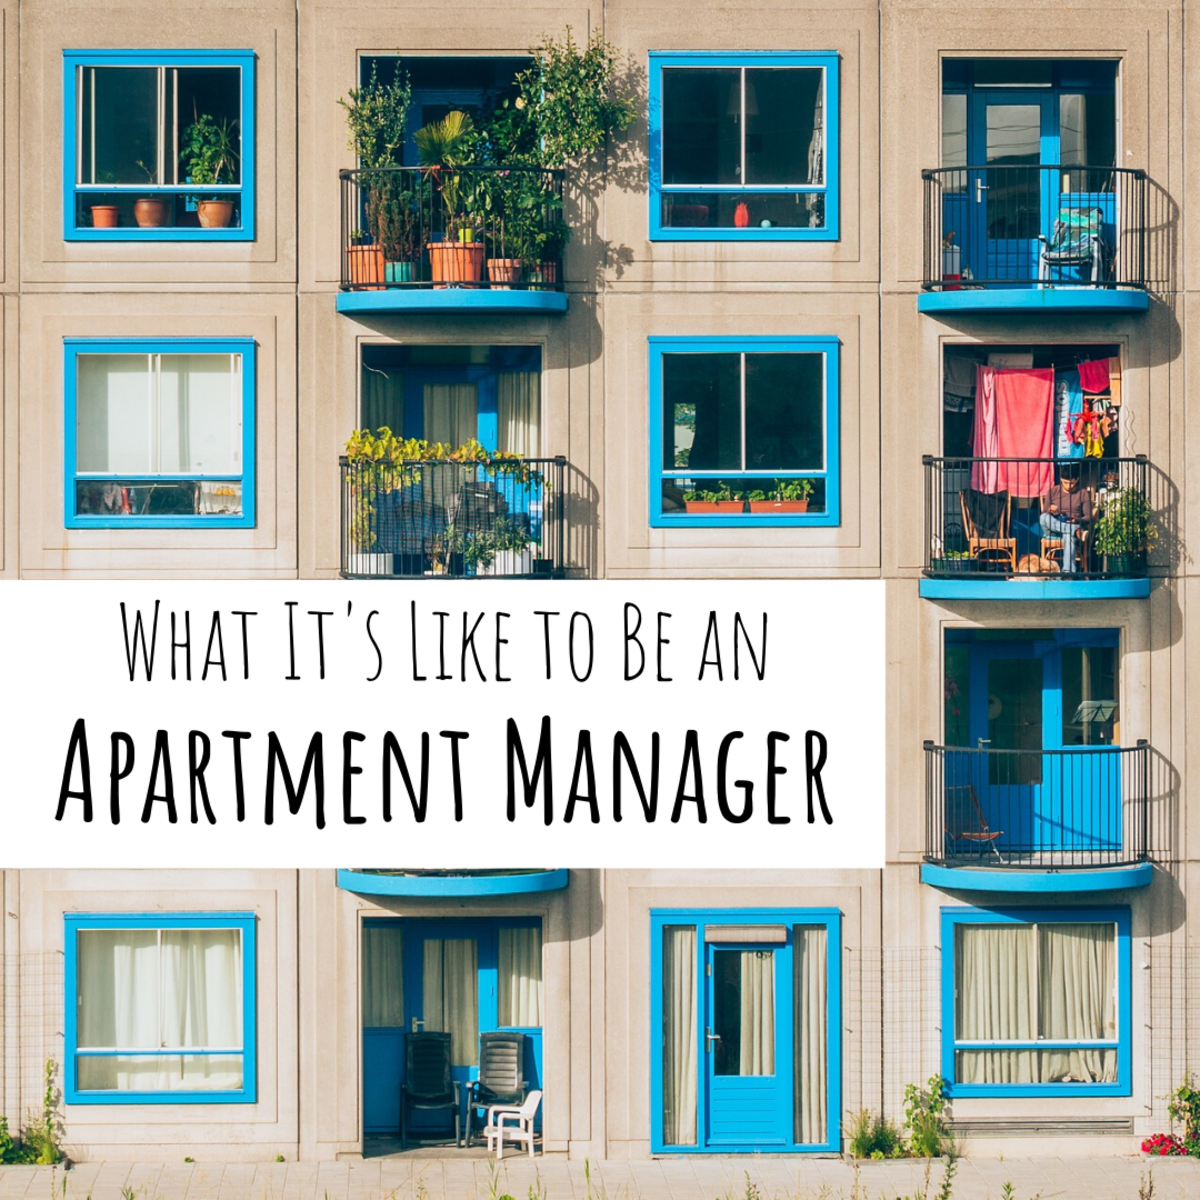 Learn about some of the daily duties of an apartment or property manager and some of the pros and cons of the job.